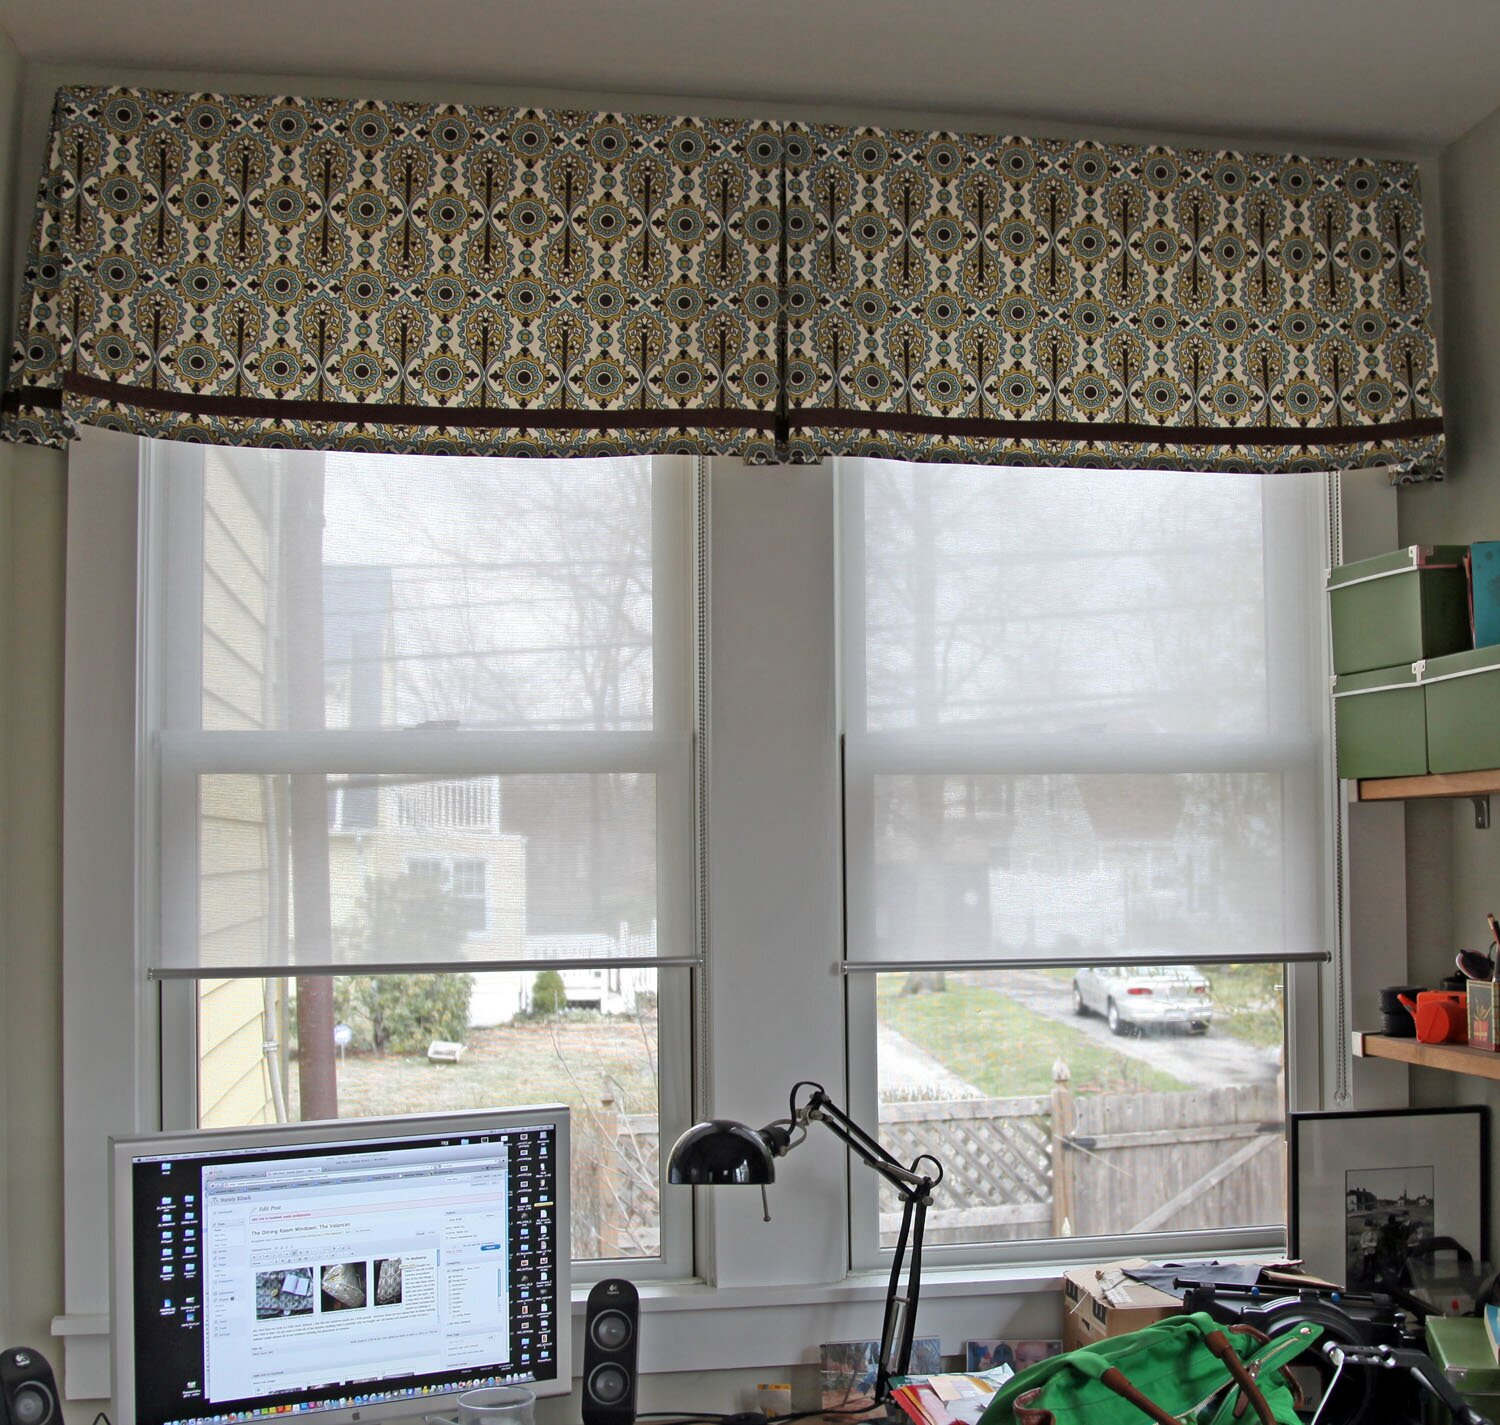 Living Room Valances | Bedroom Window Valances | Bedroom Valances For  Windows